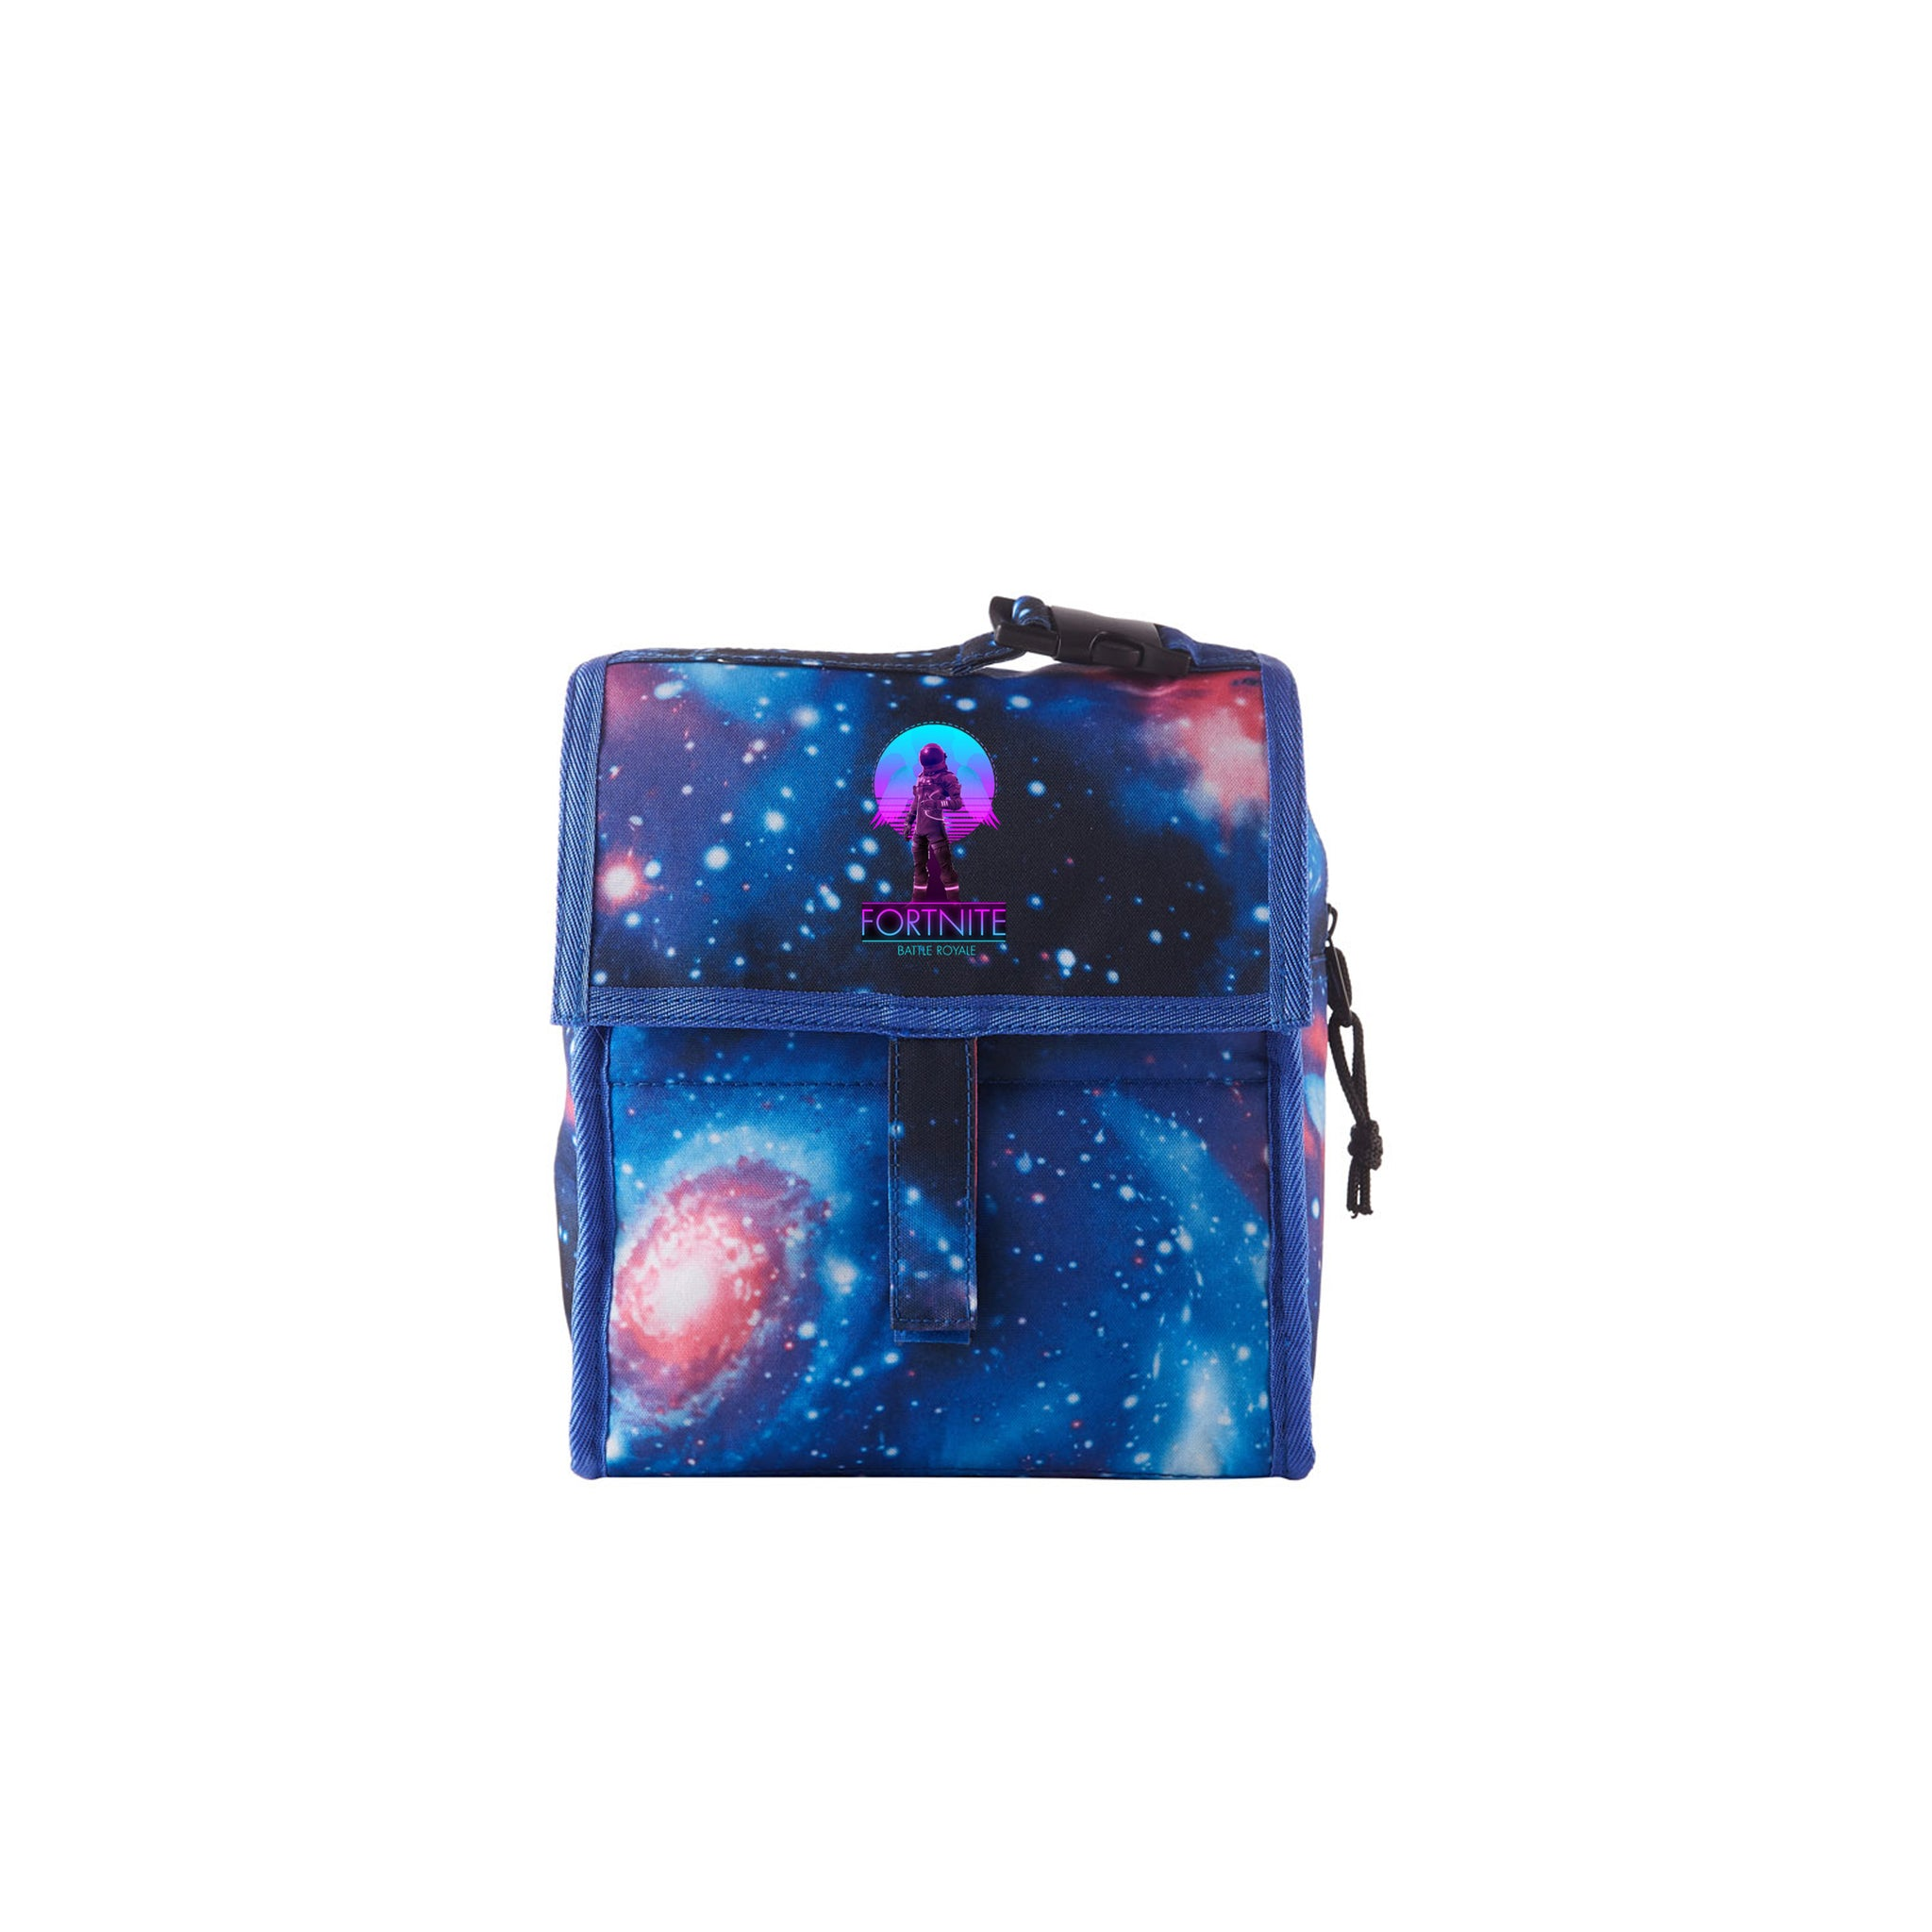 2019 Fortnite Logo Galaxy Freezable Lunch Bag with Zip Closure